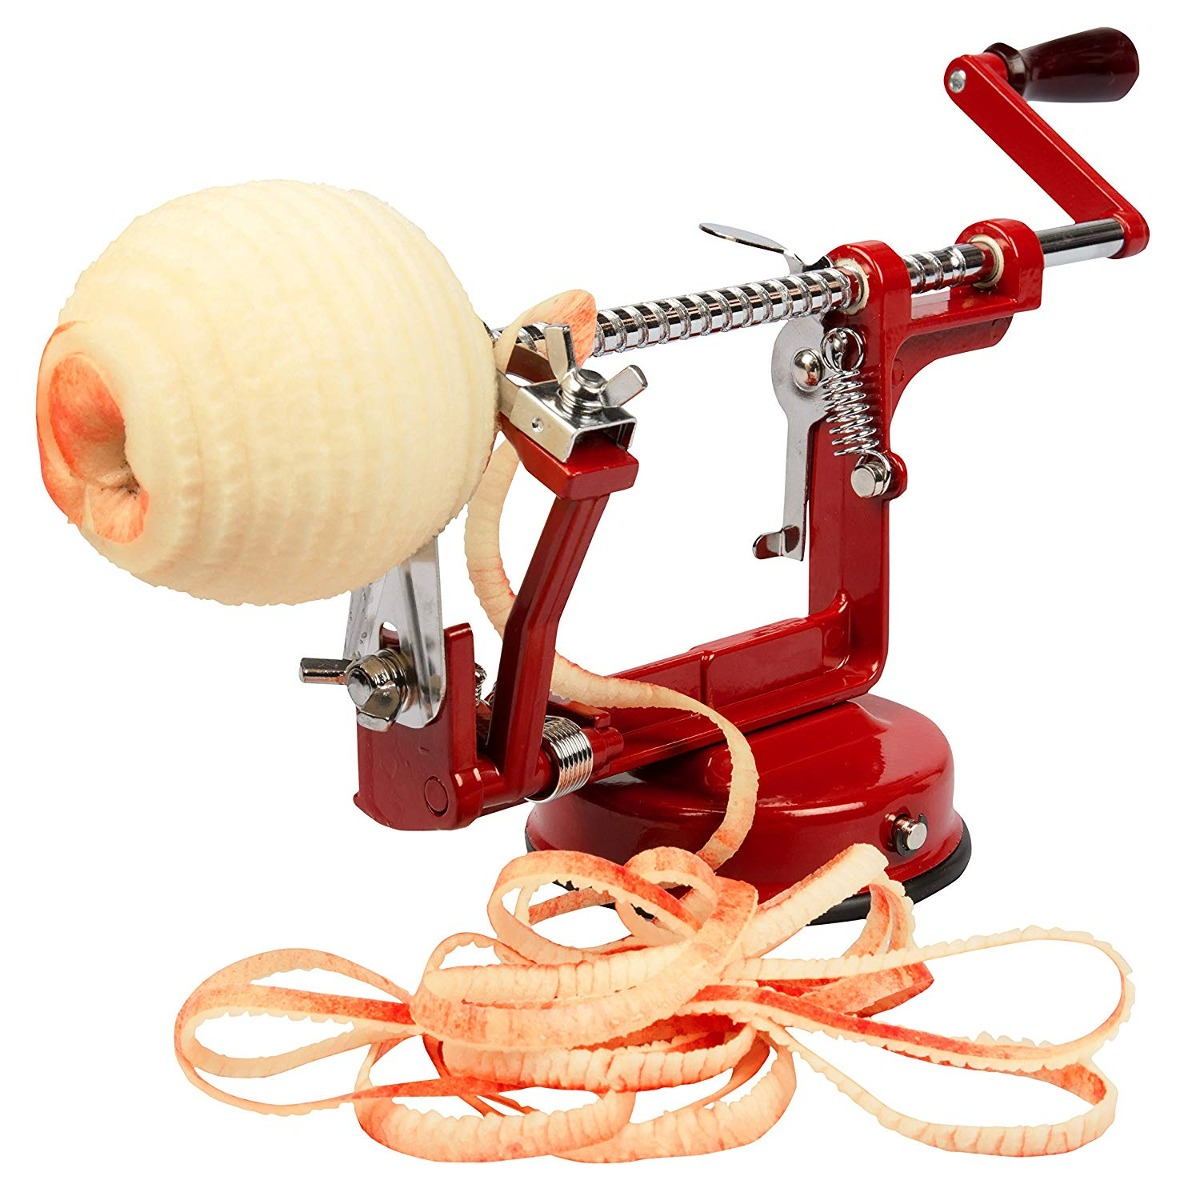 Steps to use an apple peeler